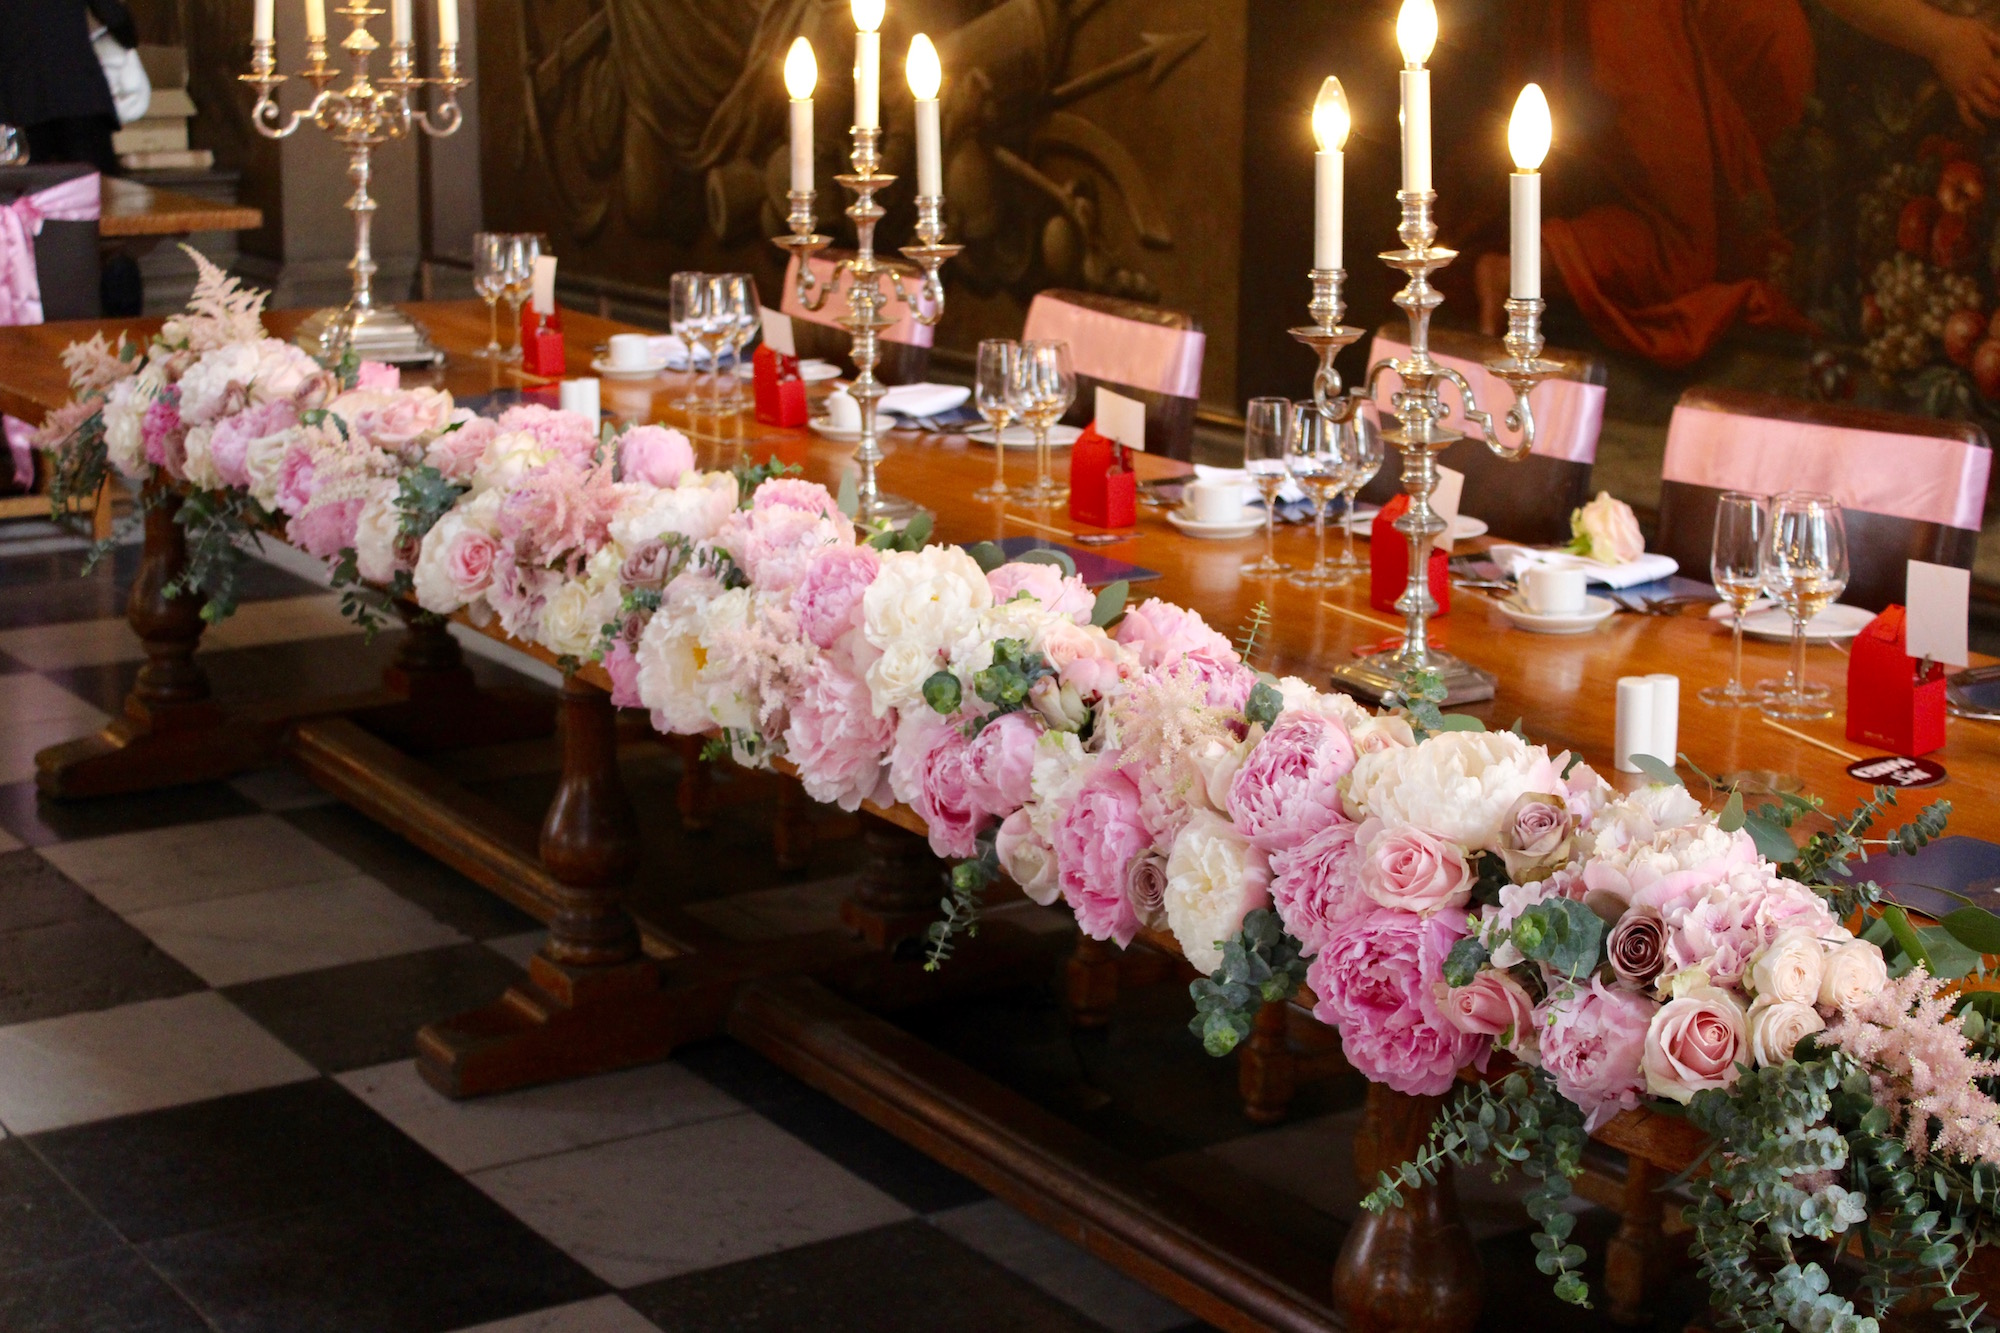 Top Table Display at The Painted Hall, Old Royal Naval College, Greenwich